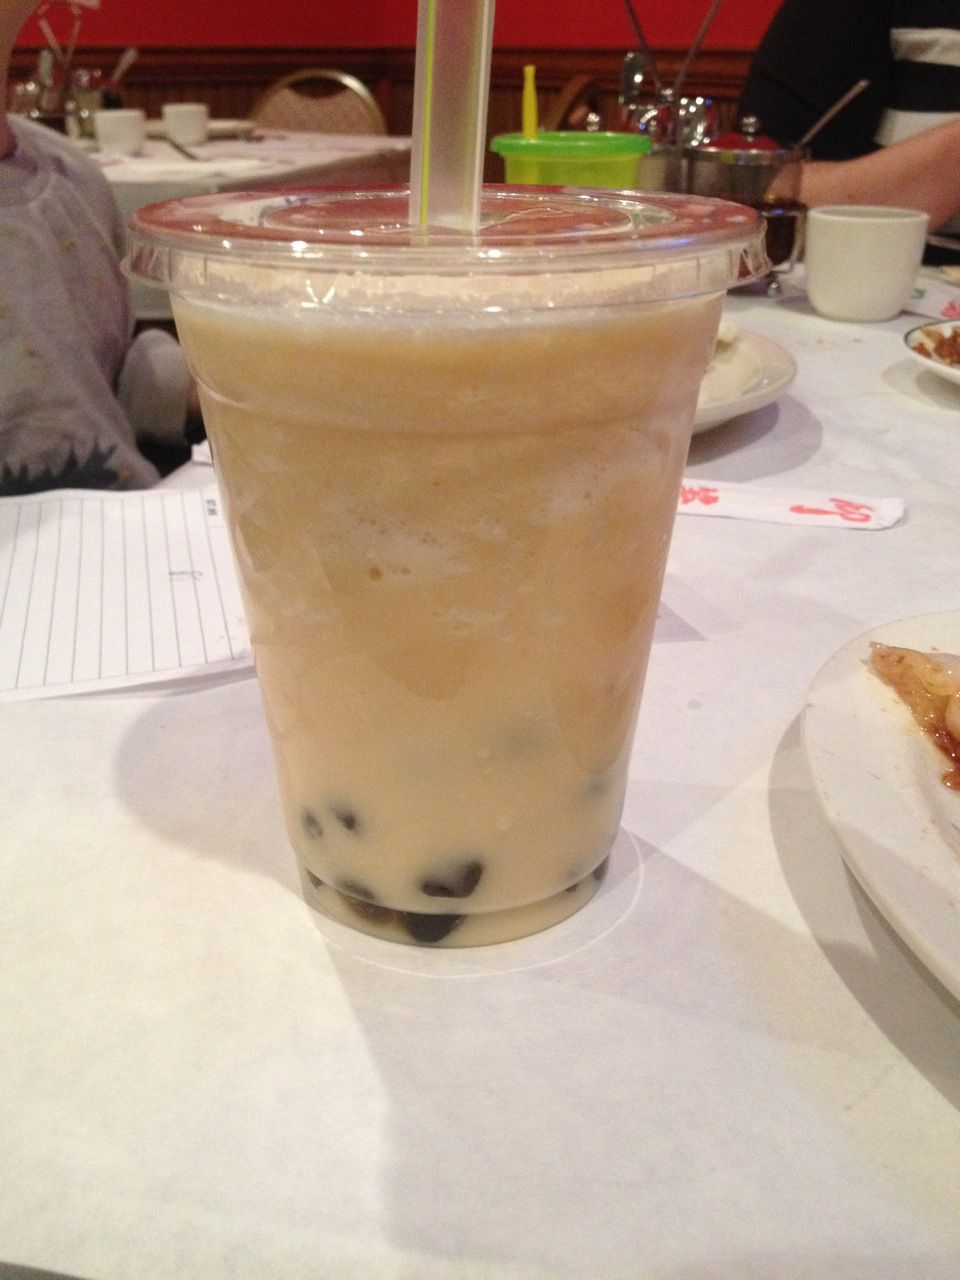 Cold bubble tea at Sunflower Chinese Restaurant & Lounge